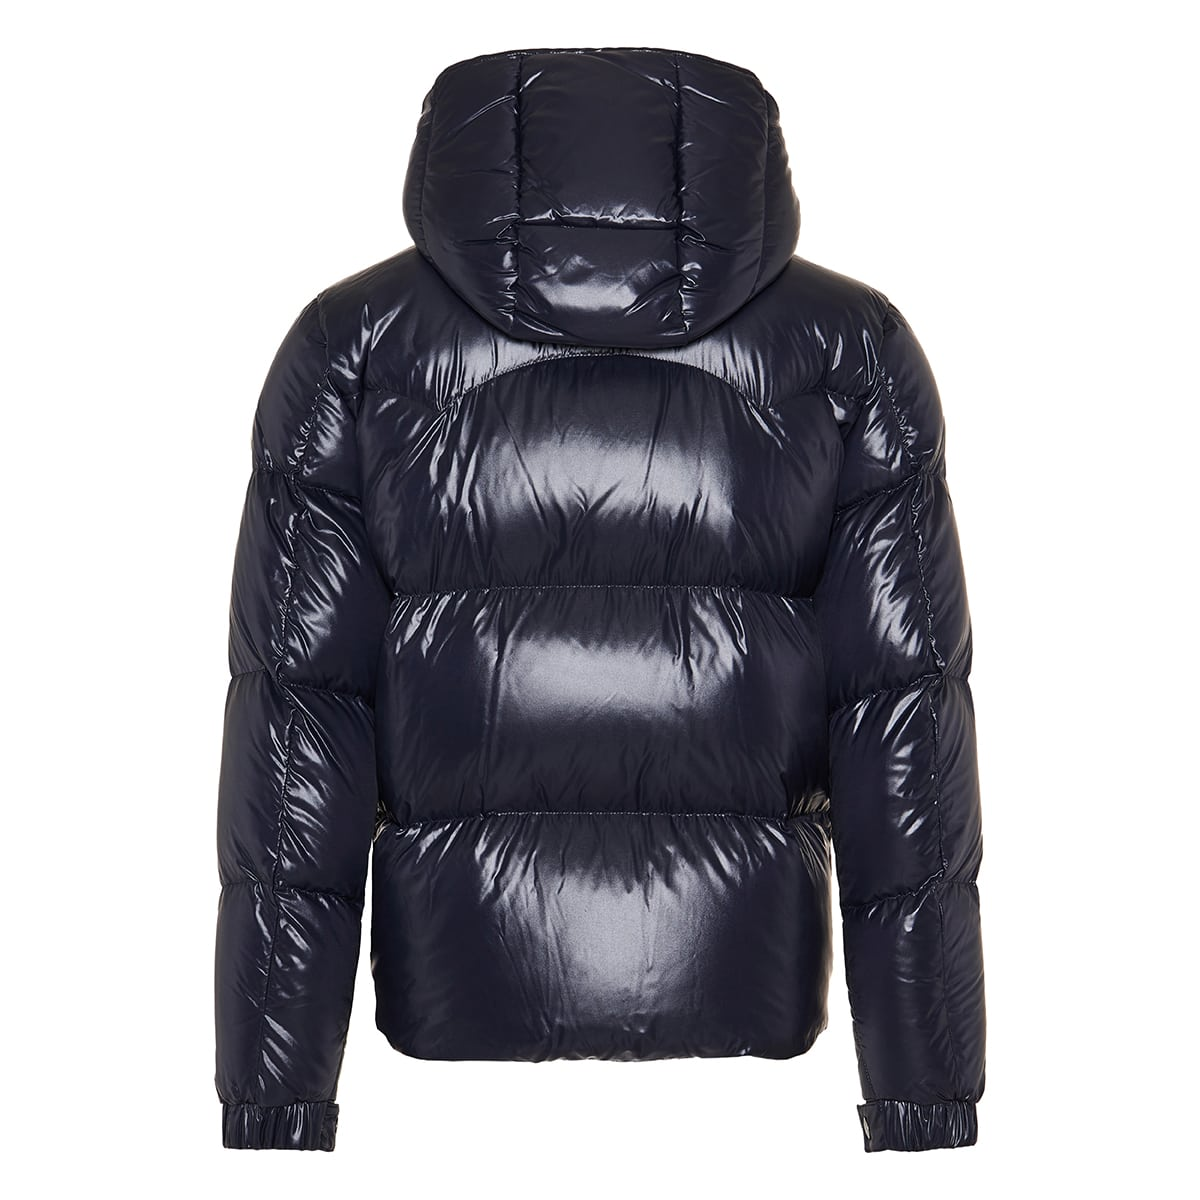 Coutard quilted puffer jacket